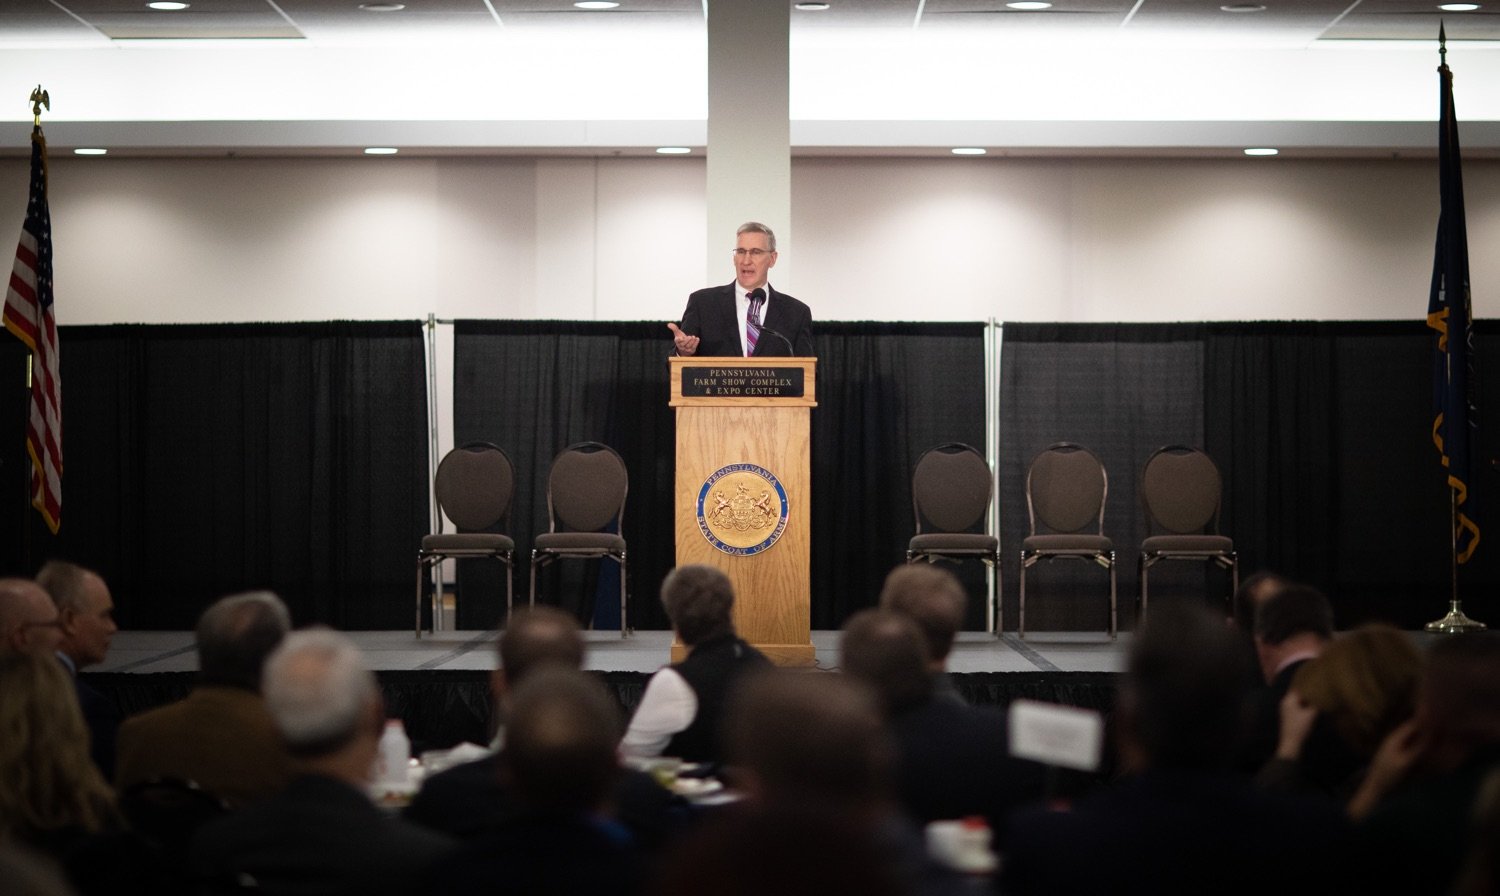 "<a href=""http://filesource.abacast.com/commonwealthofpa/photo/17650_agric_public_officials_day_dz_018.jpg"" target=""_blank"">⇣ Download Photo<br></a>Agriculture Secretary Russell Redding speaks at Public Officials Day.  Addressing nearly 800 public officials at the Pennsylvania Farm Show today, Agriculture Secretary Russell Redding announced the opening of the last grant program made possible by the 2019 PA Farm Bill. The $1 million Farm Vitality Grant Program aims to enhance the long-term health and vitality of Pennsylvanias family farms. Harrisburg, PA  January 08, 2020"